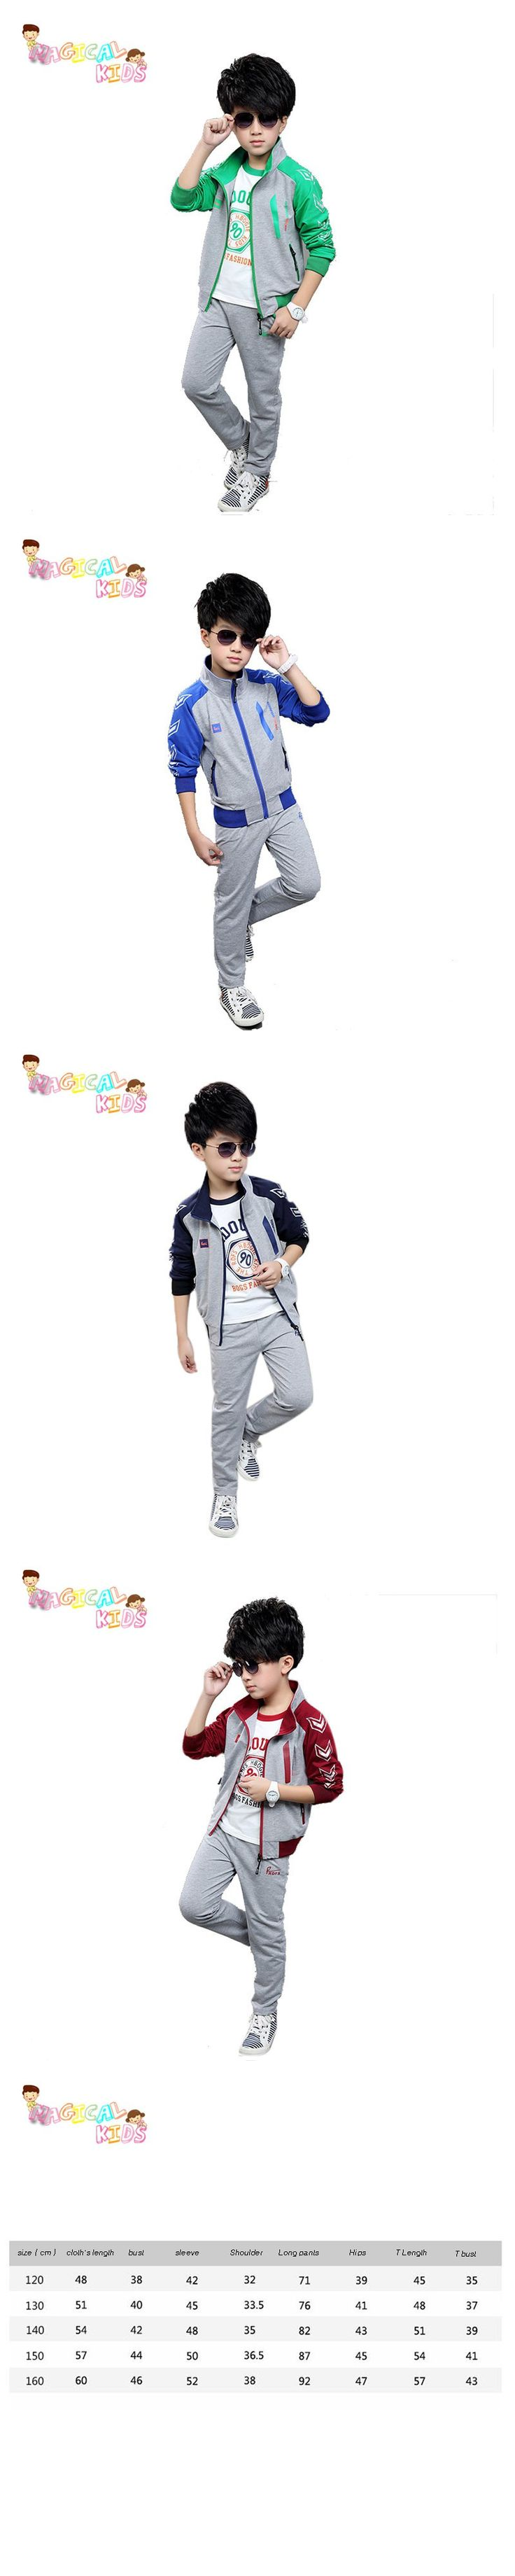 Spring Fashion Cheap Tracksuit Full Sleeve Coat+Trousers+Sleeve T shirt Boy Children Clothes Set Baby Set Kids Clothes 3PCS $39.86